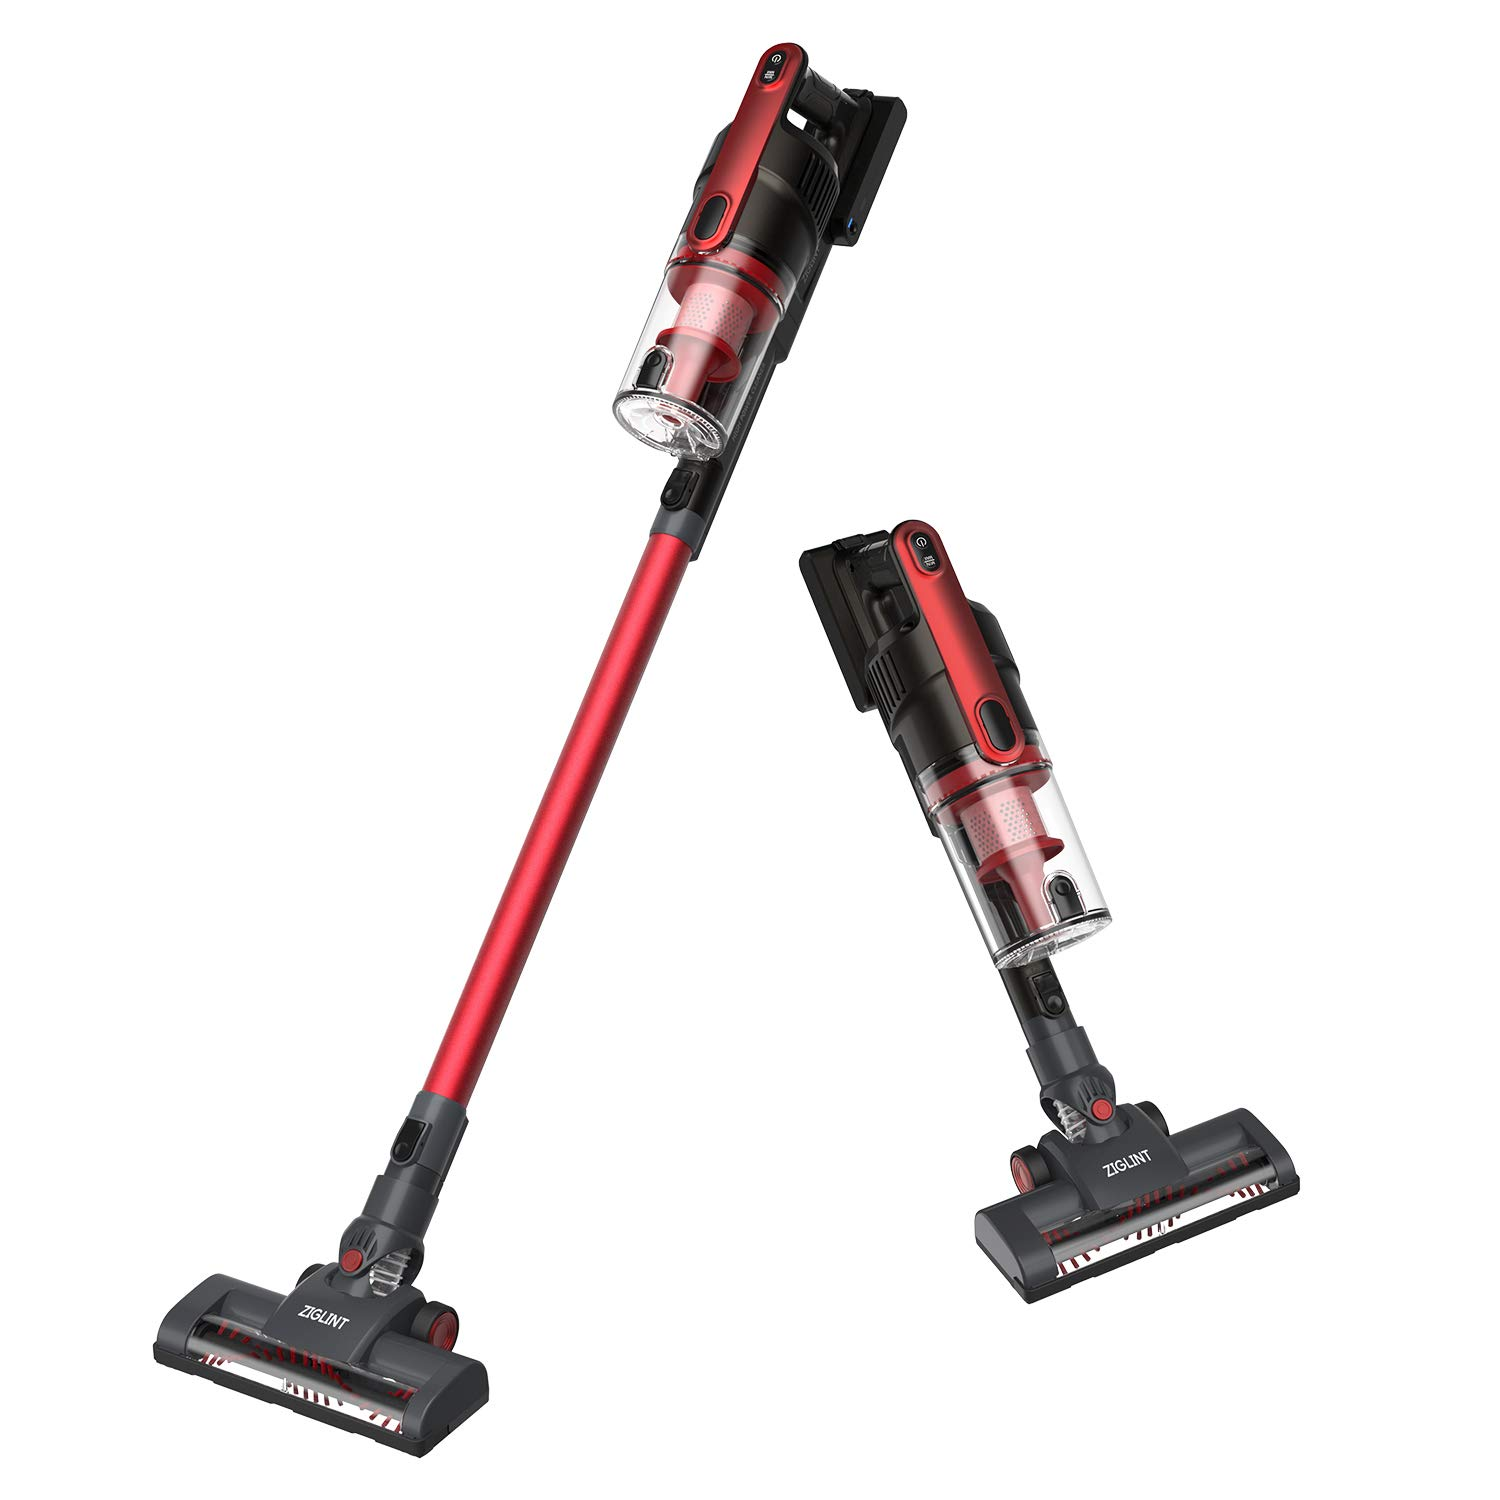 ZIGLINT Cordless Vacuum Cleaner, Long Running Time and Powerful Suction